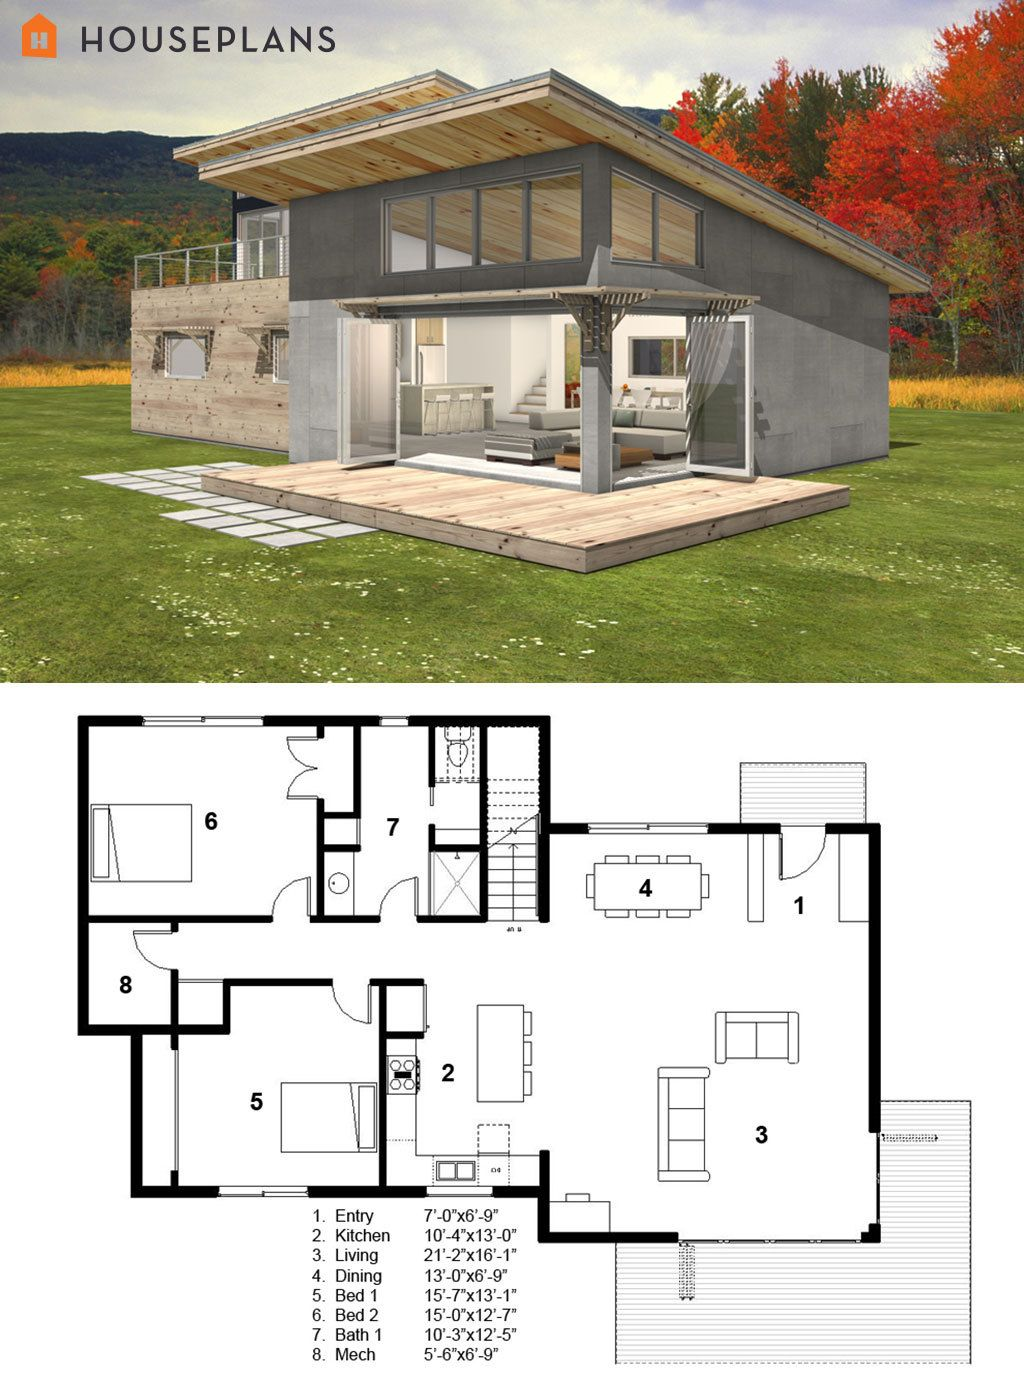 Small modern cabin house plan by freegreen energy for Small modern house floor plans